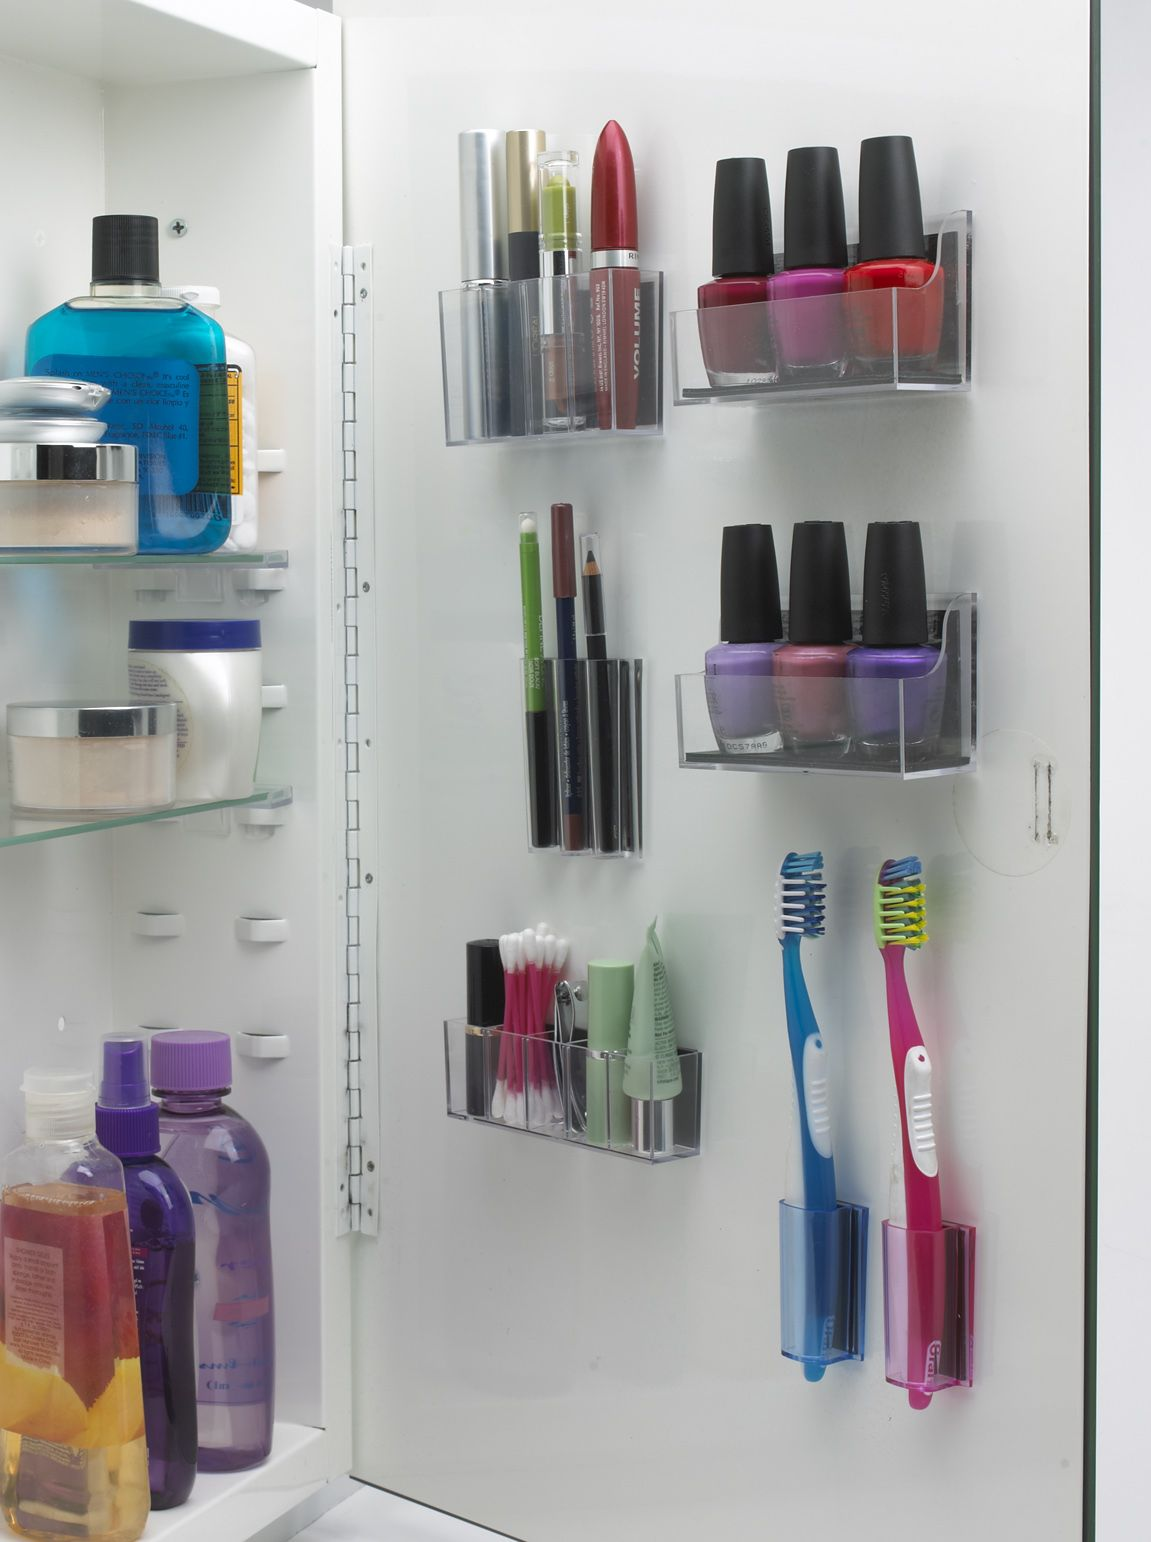 Bathroom cabinet door organizer - Door Storage